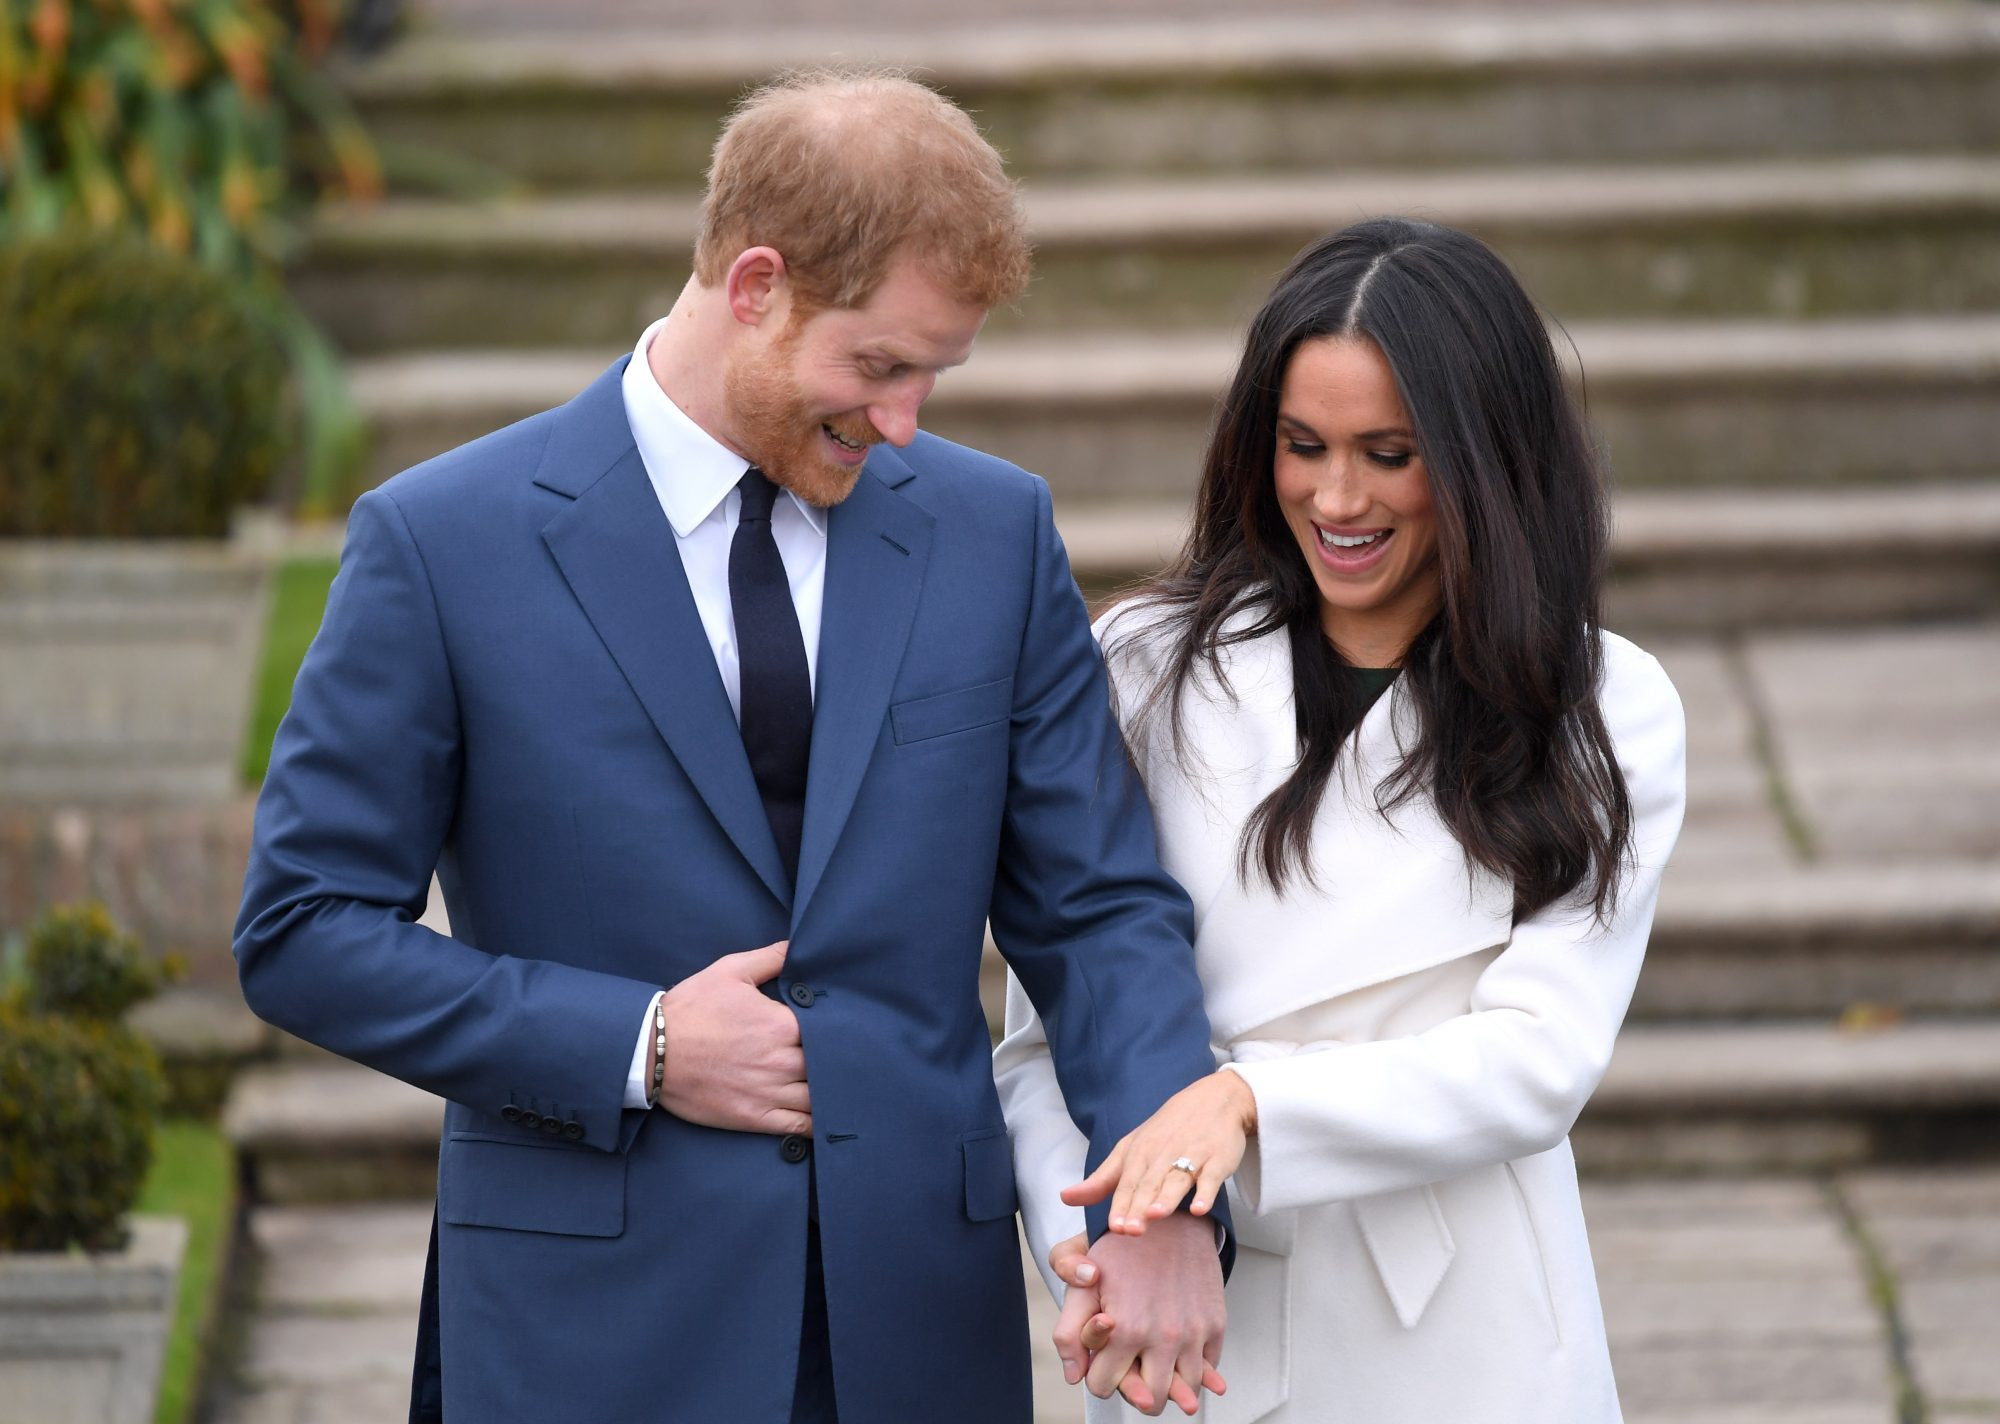 getty-royal-engagement-image